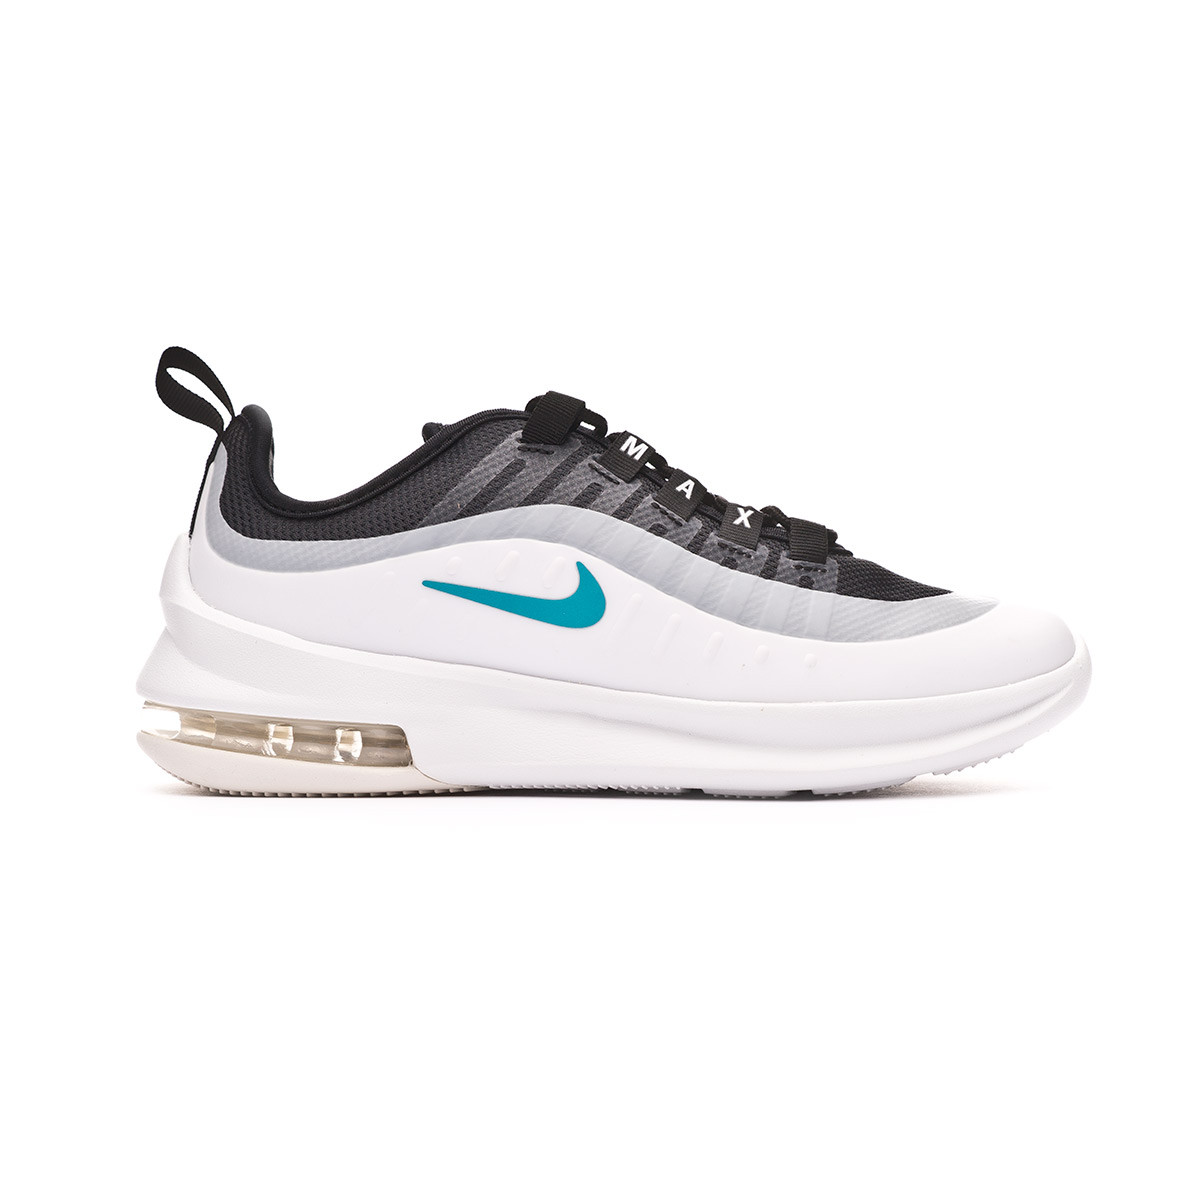 linda sesión cazar  Trainers Nike Air Max Axis Niño Black-Spirit teal-White-Platinum tint -  Football store Fútbol Emotion